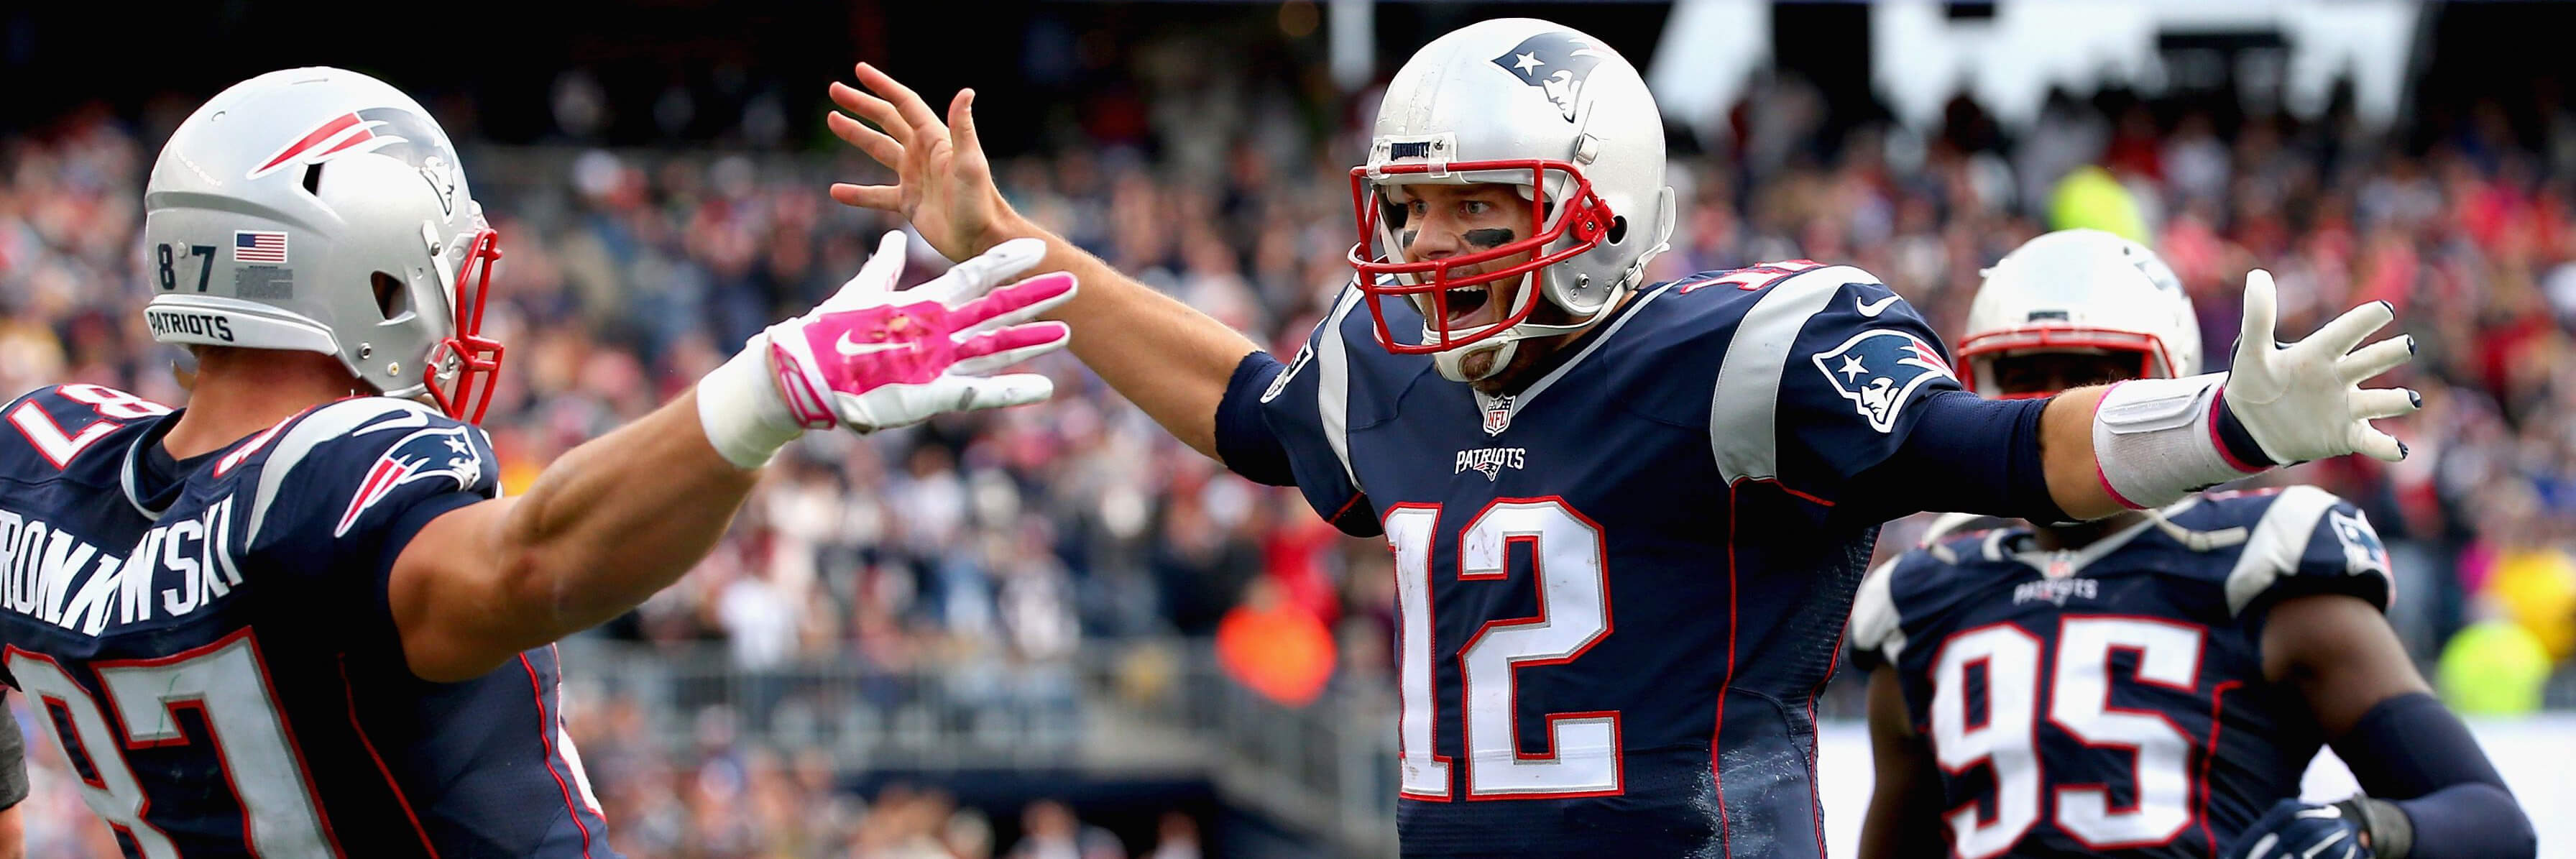 Patriot's Rob Gronkowski Gets Traded To The Buccaneers